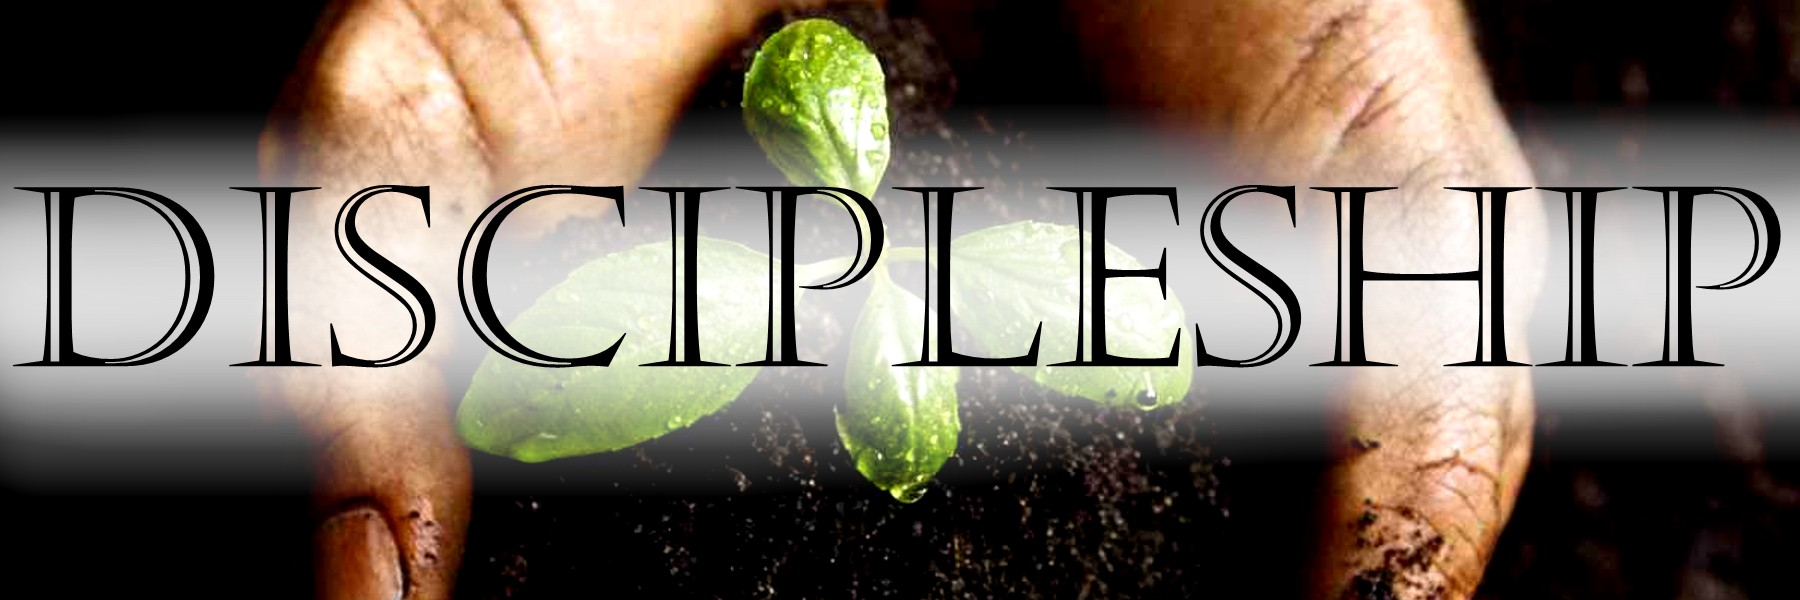 Enrolling New Believers in Discipleship